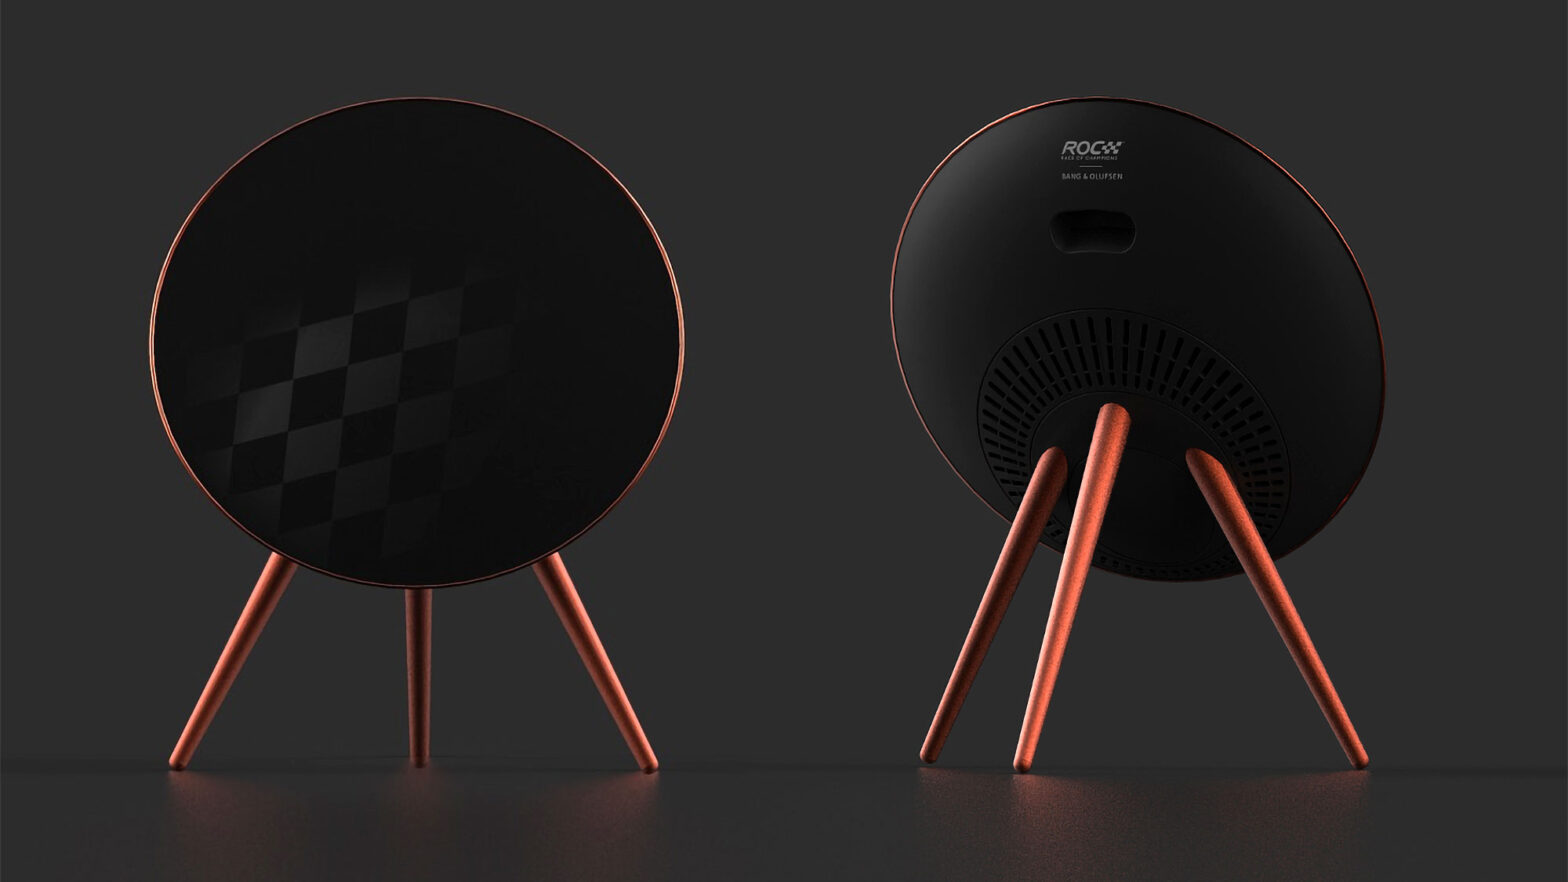 """Bang & Olufsen Beoplay A9 Fourth Generation """"ROC Edition"""" Speakers"""